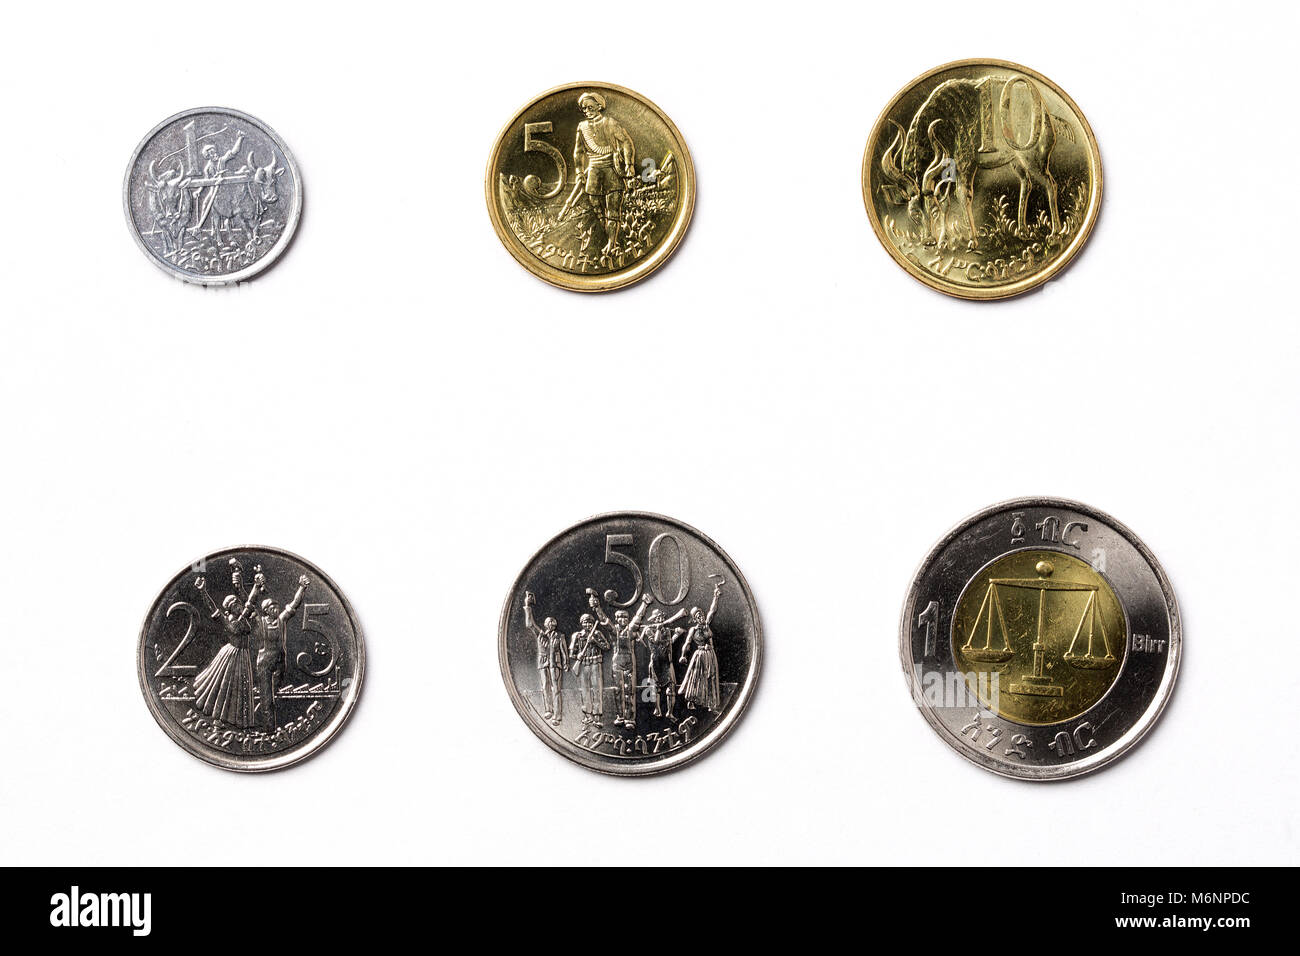 Ethiopian coins on a white background - Stock Image